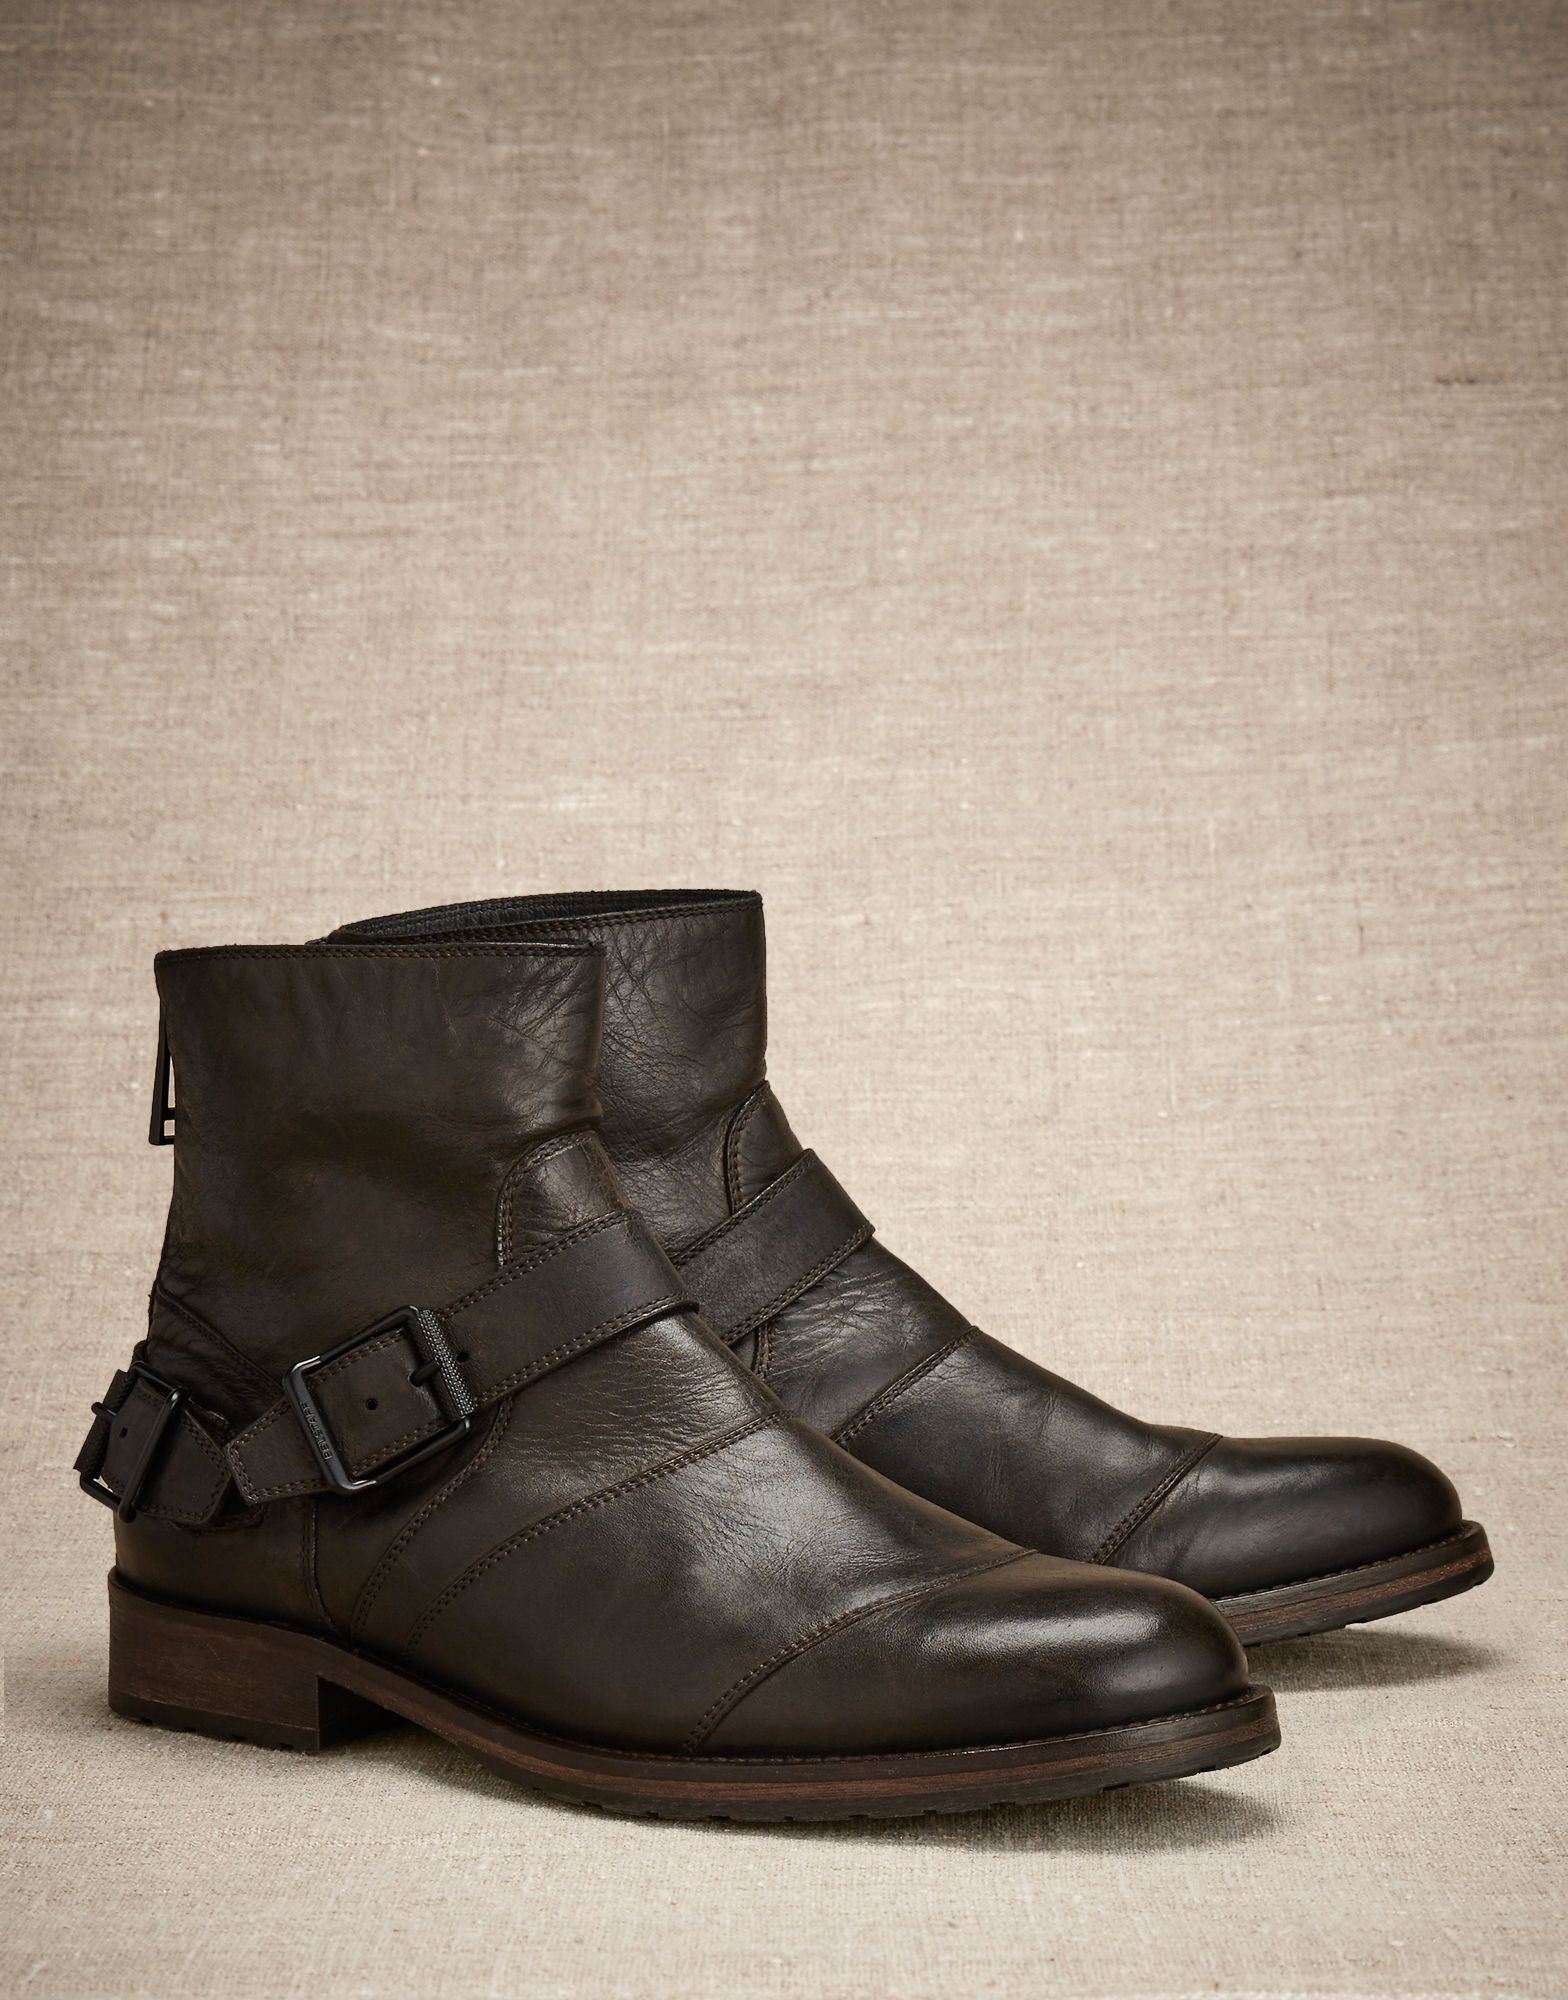 9b11149c802a Trialmaster Short Boot - Black Leather Shoes